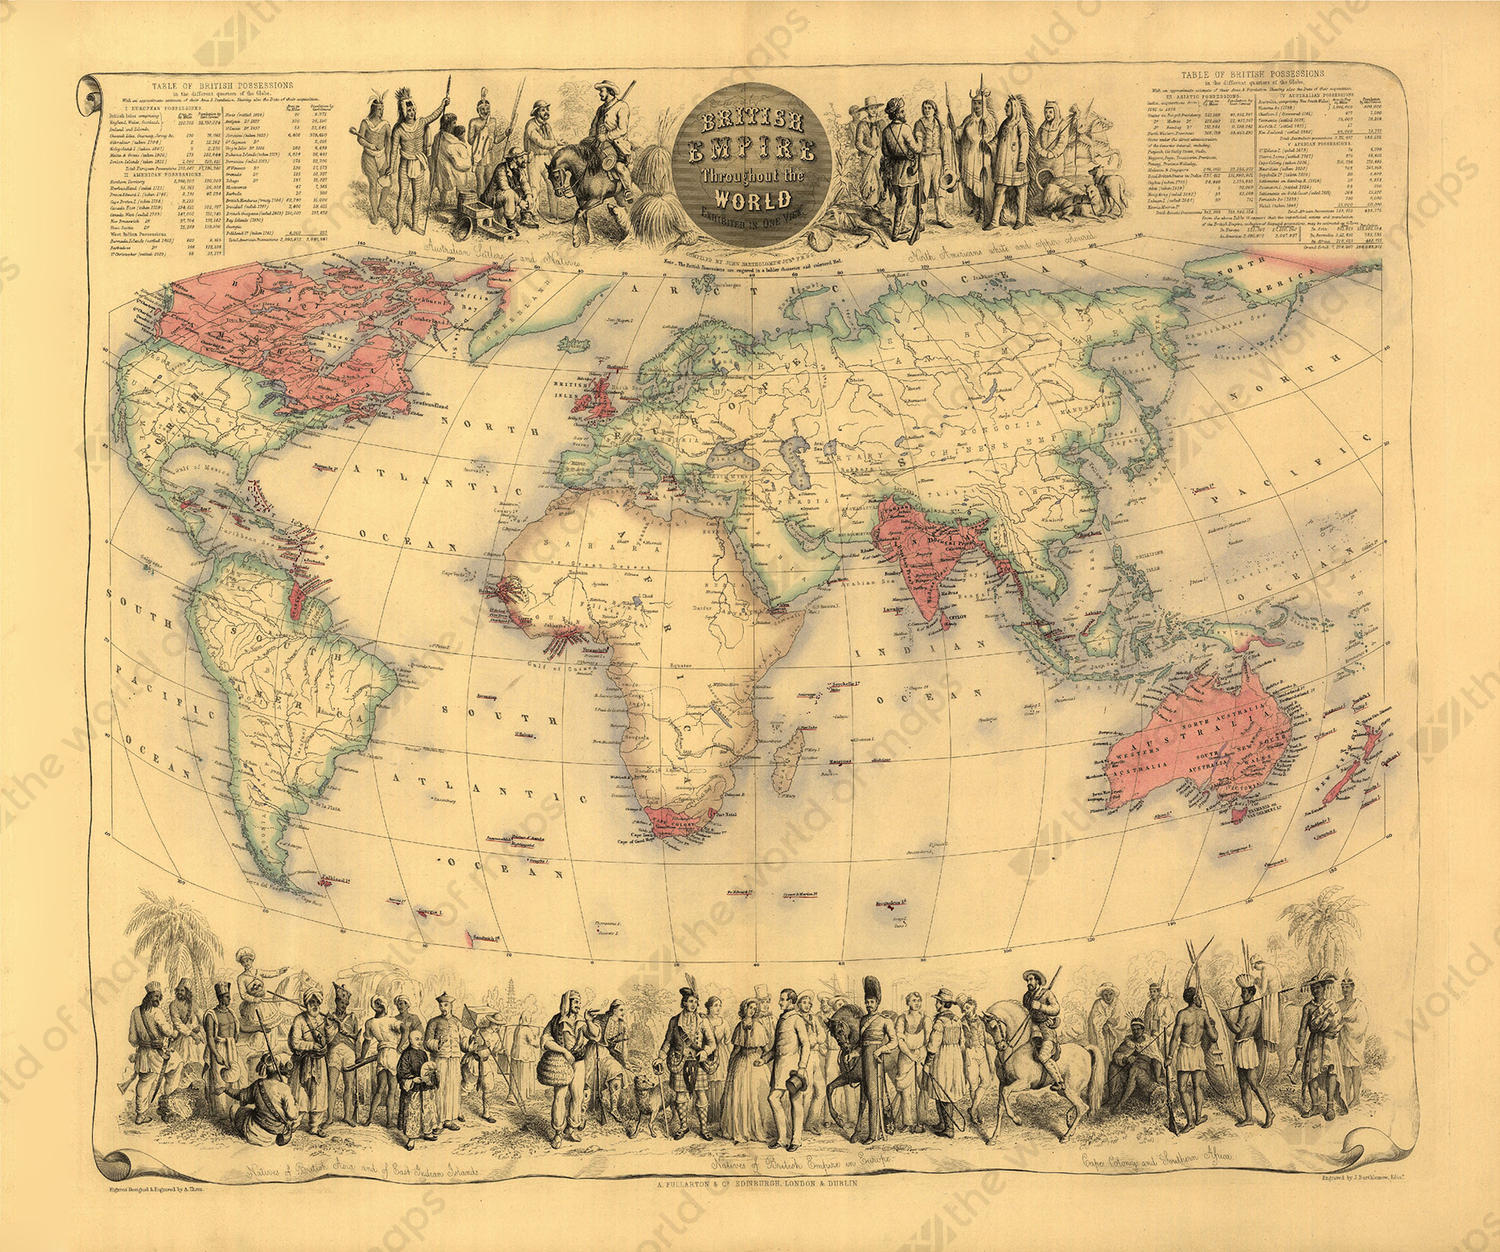 Digital world map year 1852 bartholomew 1338 the world of maps digital world map year 1852 bartholomew gumiabroncs Image collections